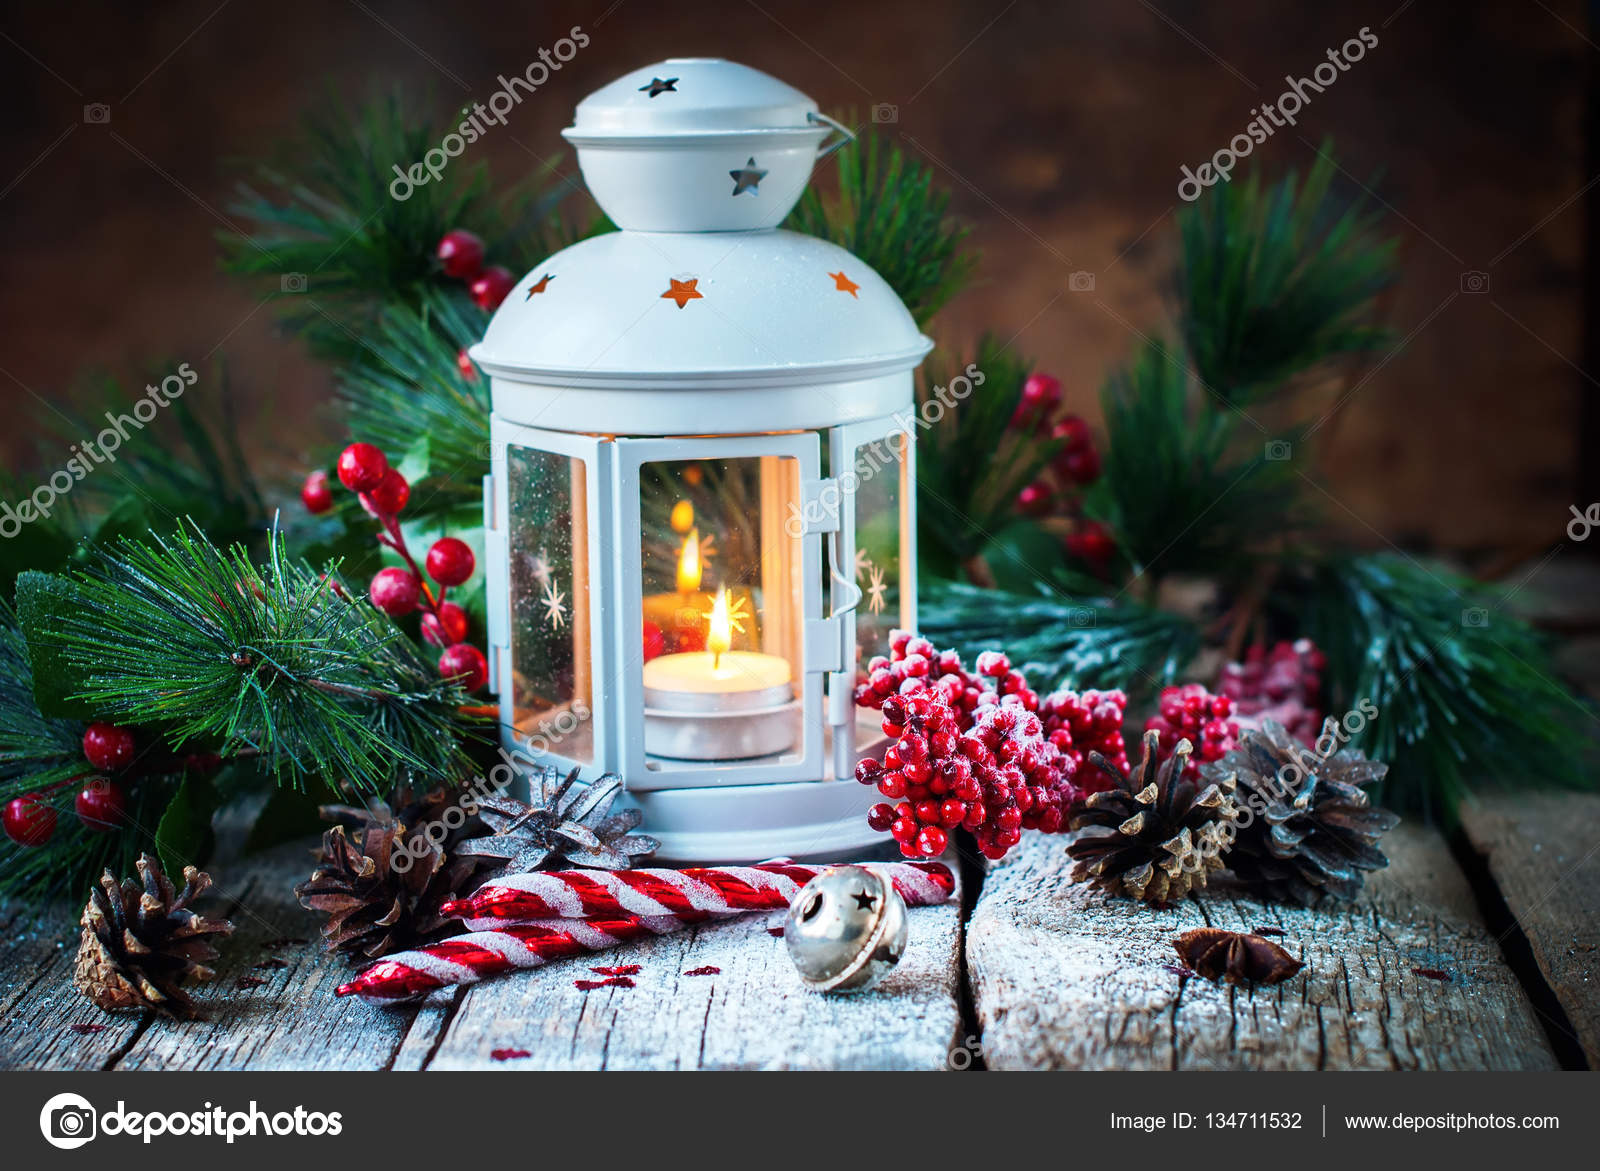 ae6ae9dbe4c1 Drawn Snow Holiday Christmas Gifts Red Ball — Stock Photo © OlgaPink ...